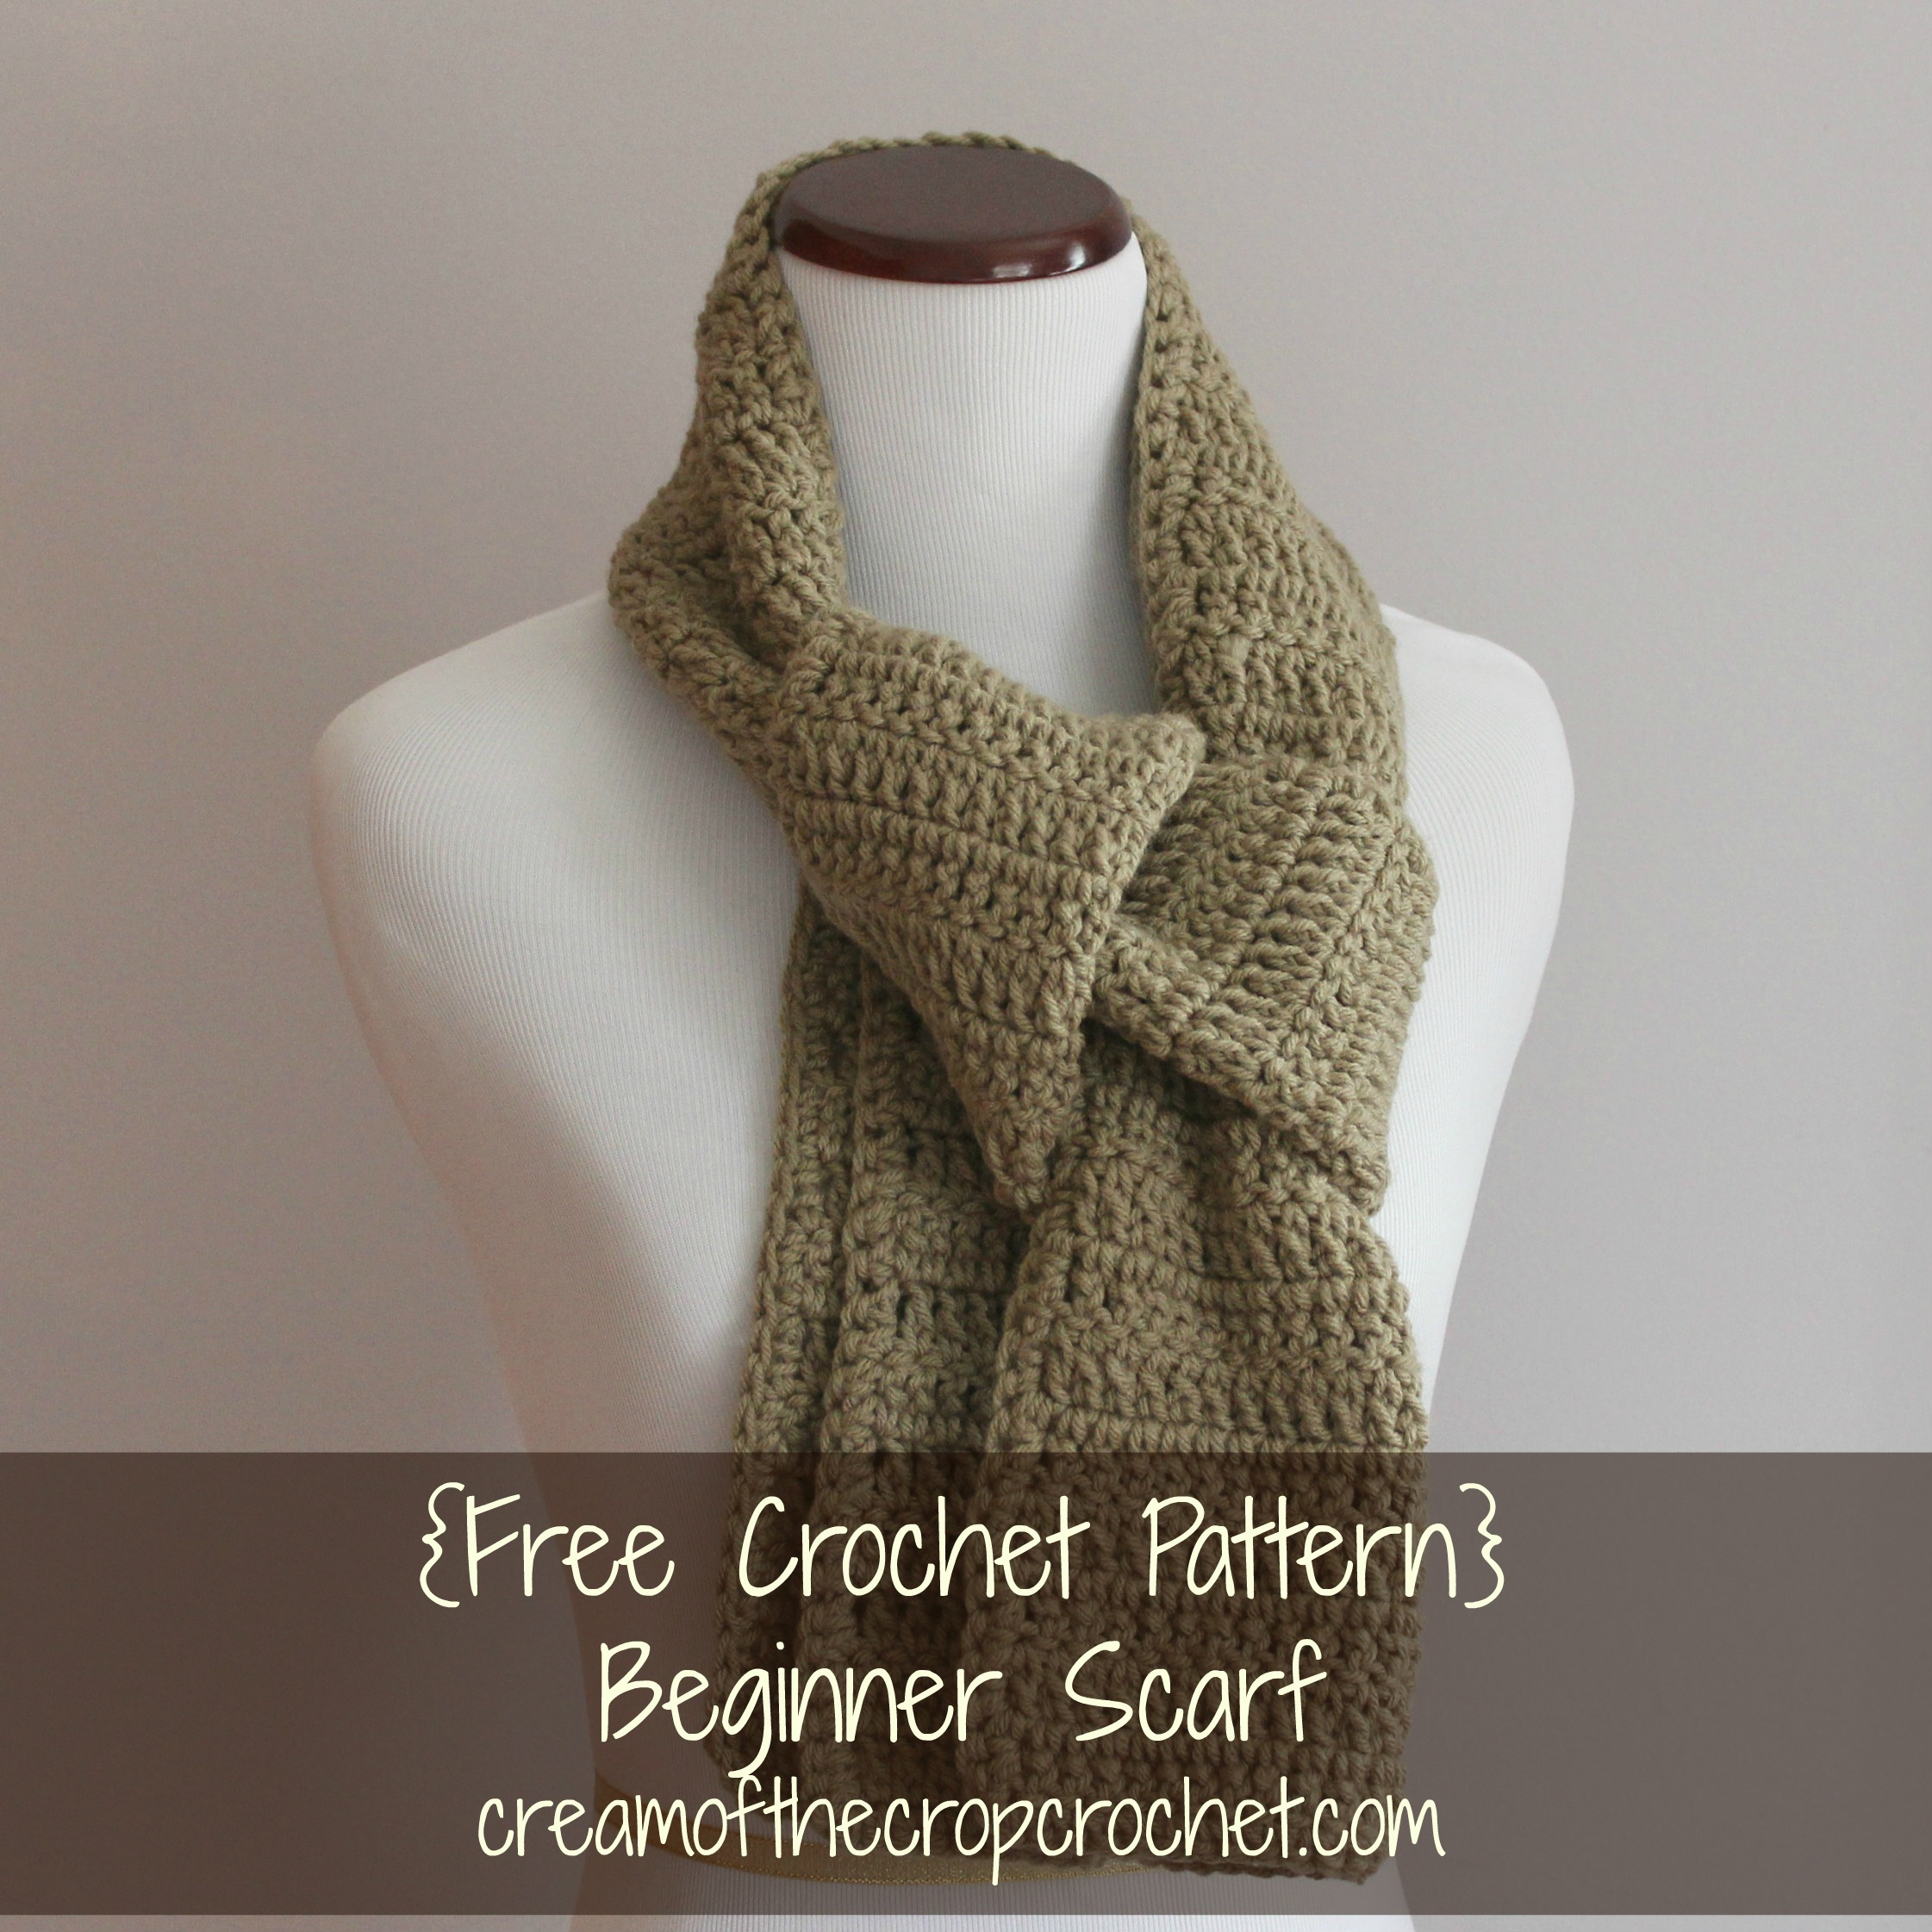 Lee Scarf Crochet Pattern